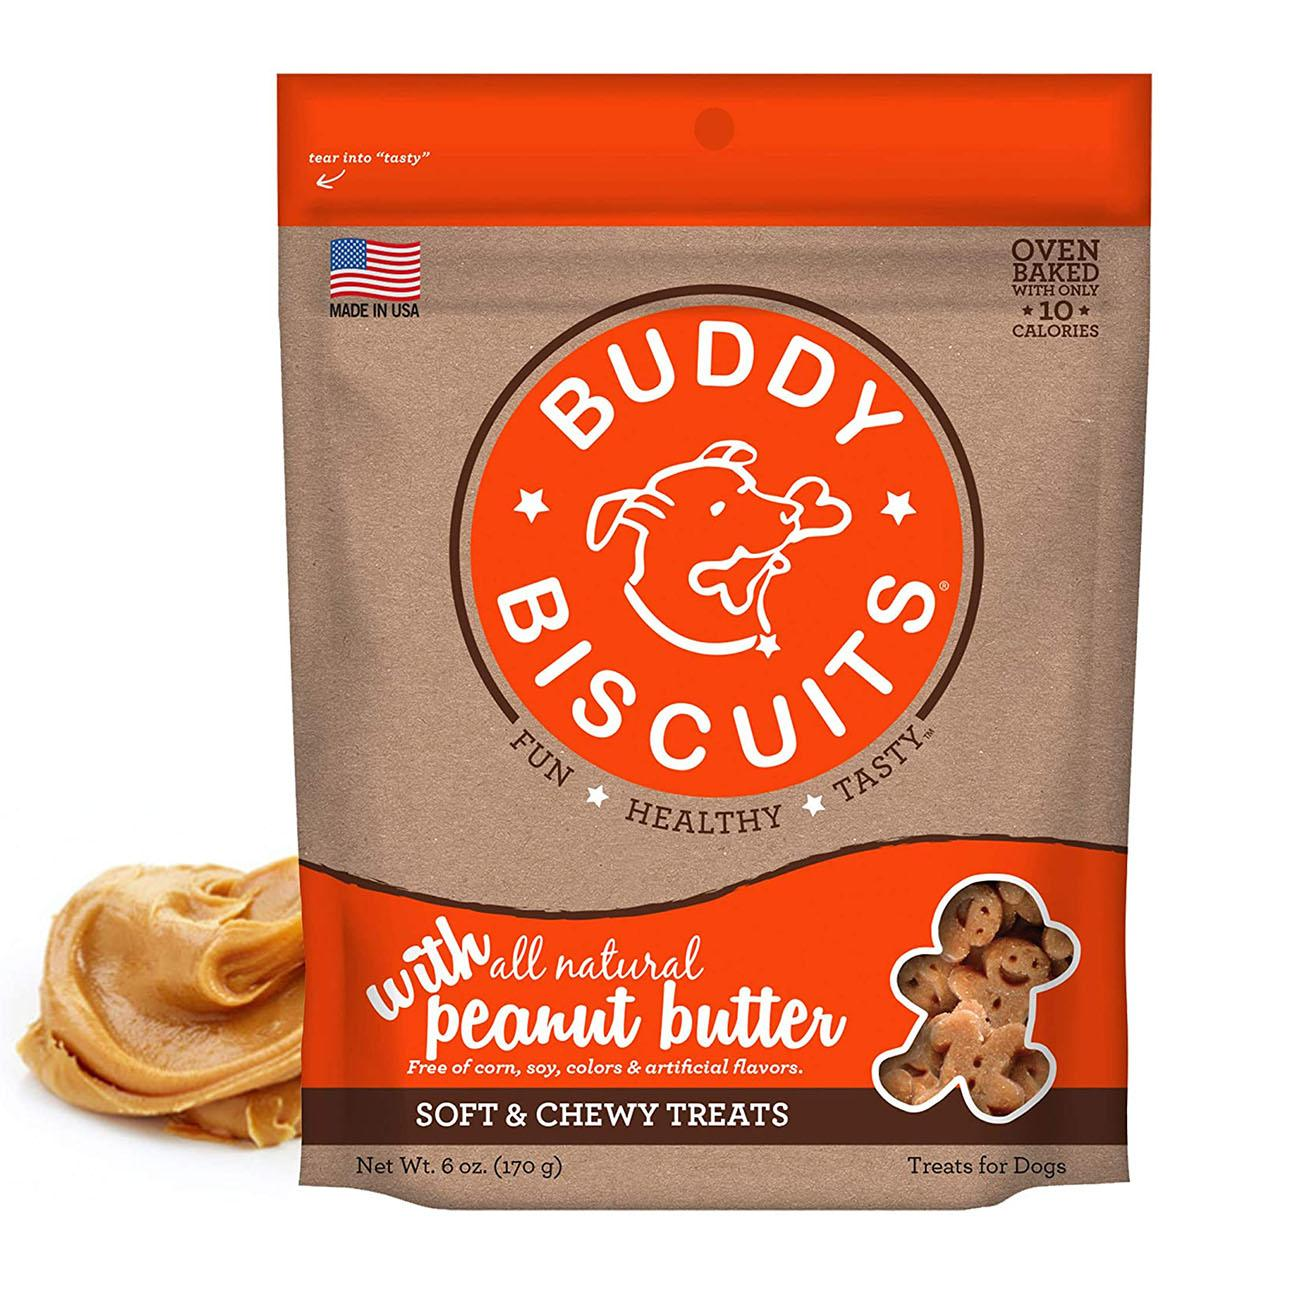 Buddy Biscuits Whole Grain Soft & Chewy Dog Treats - Peanut Butter